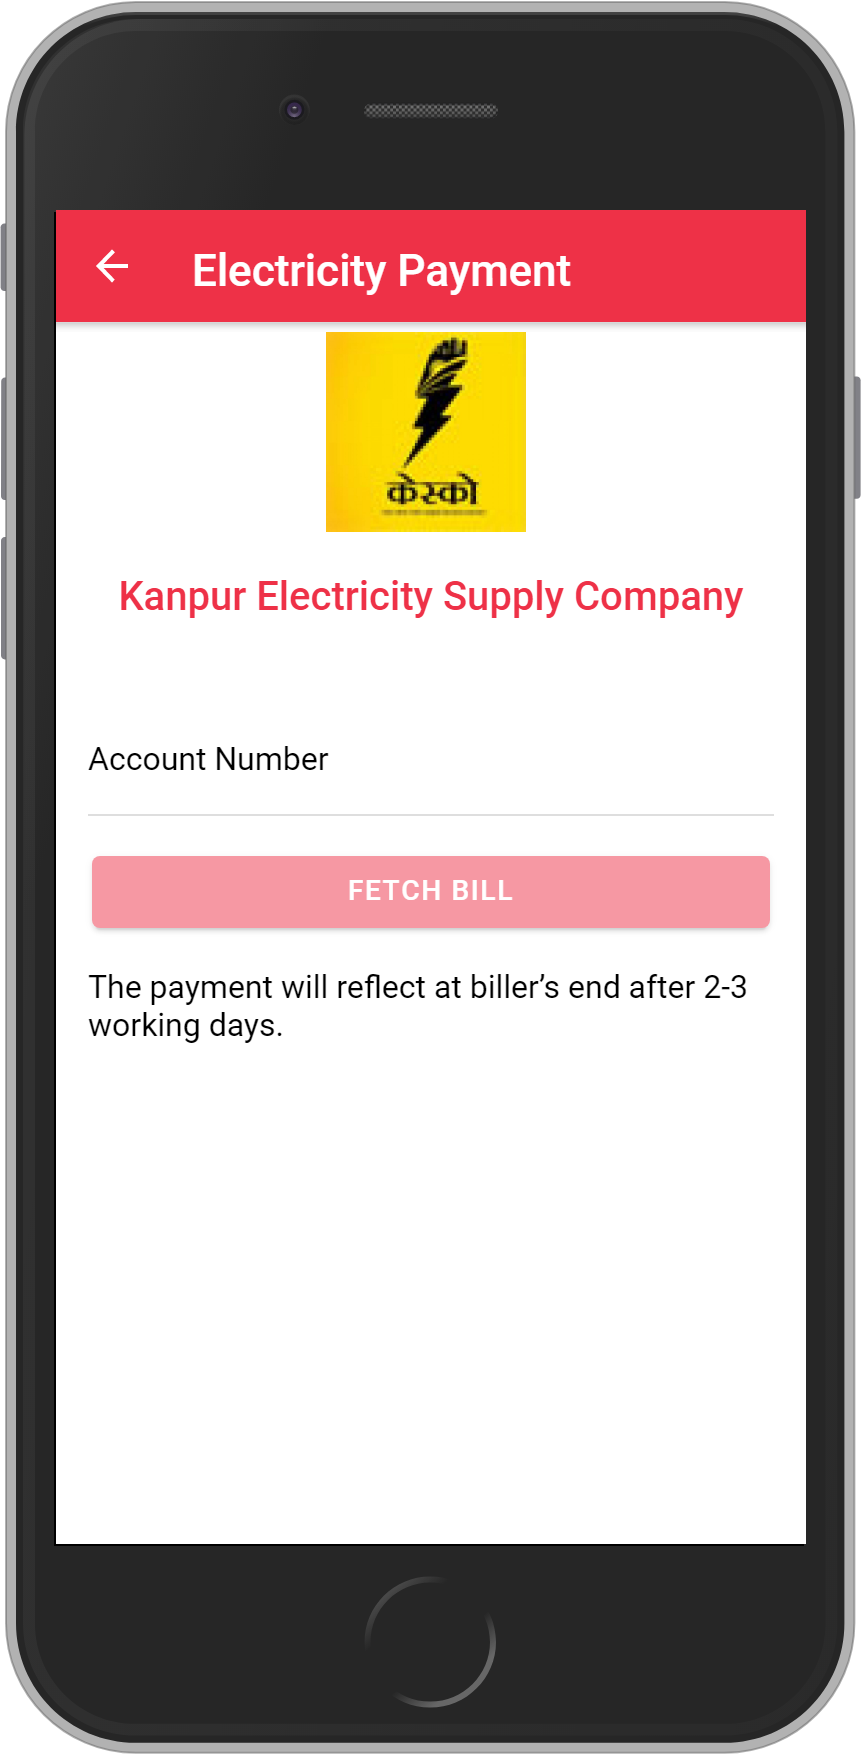 Get UNLIMITED <b>0.1%</b> CASHBACK on Kanpur Electricity Supply Company Bill Payment.